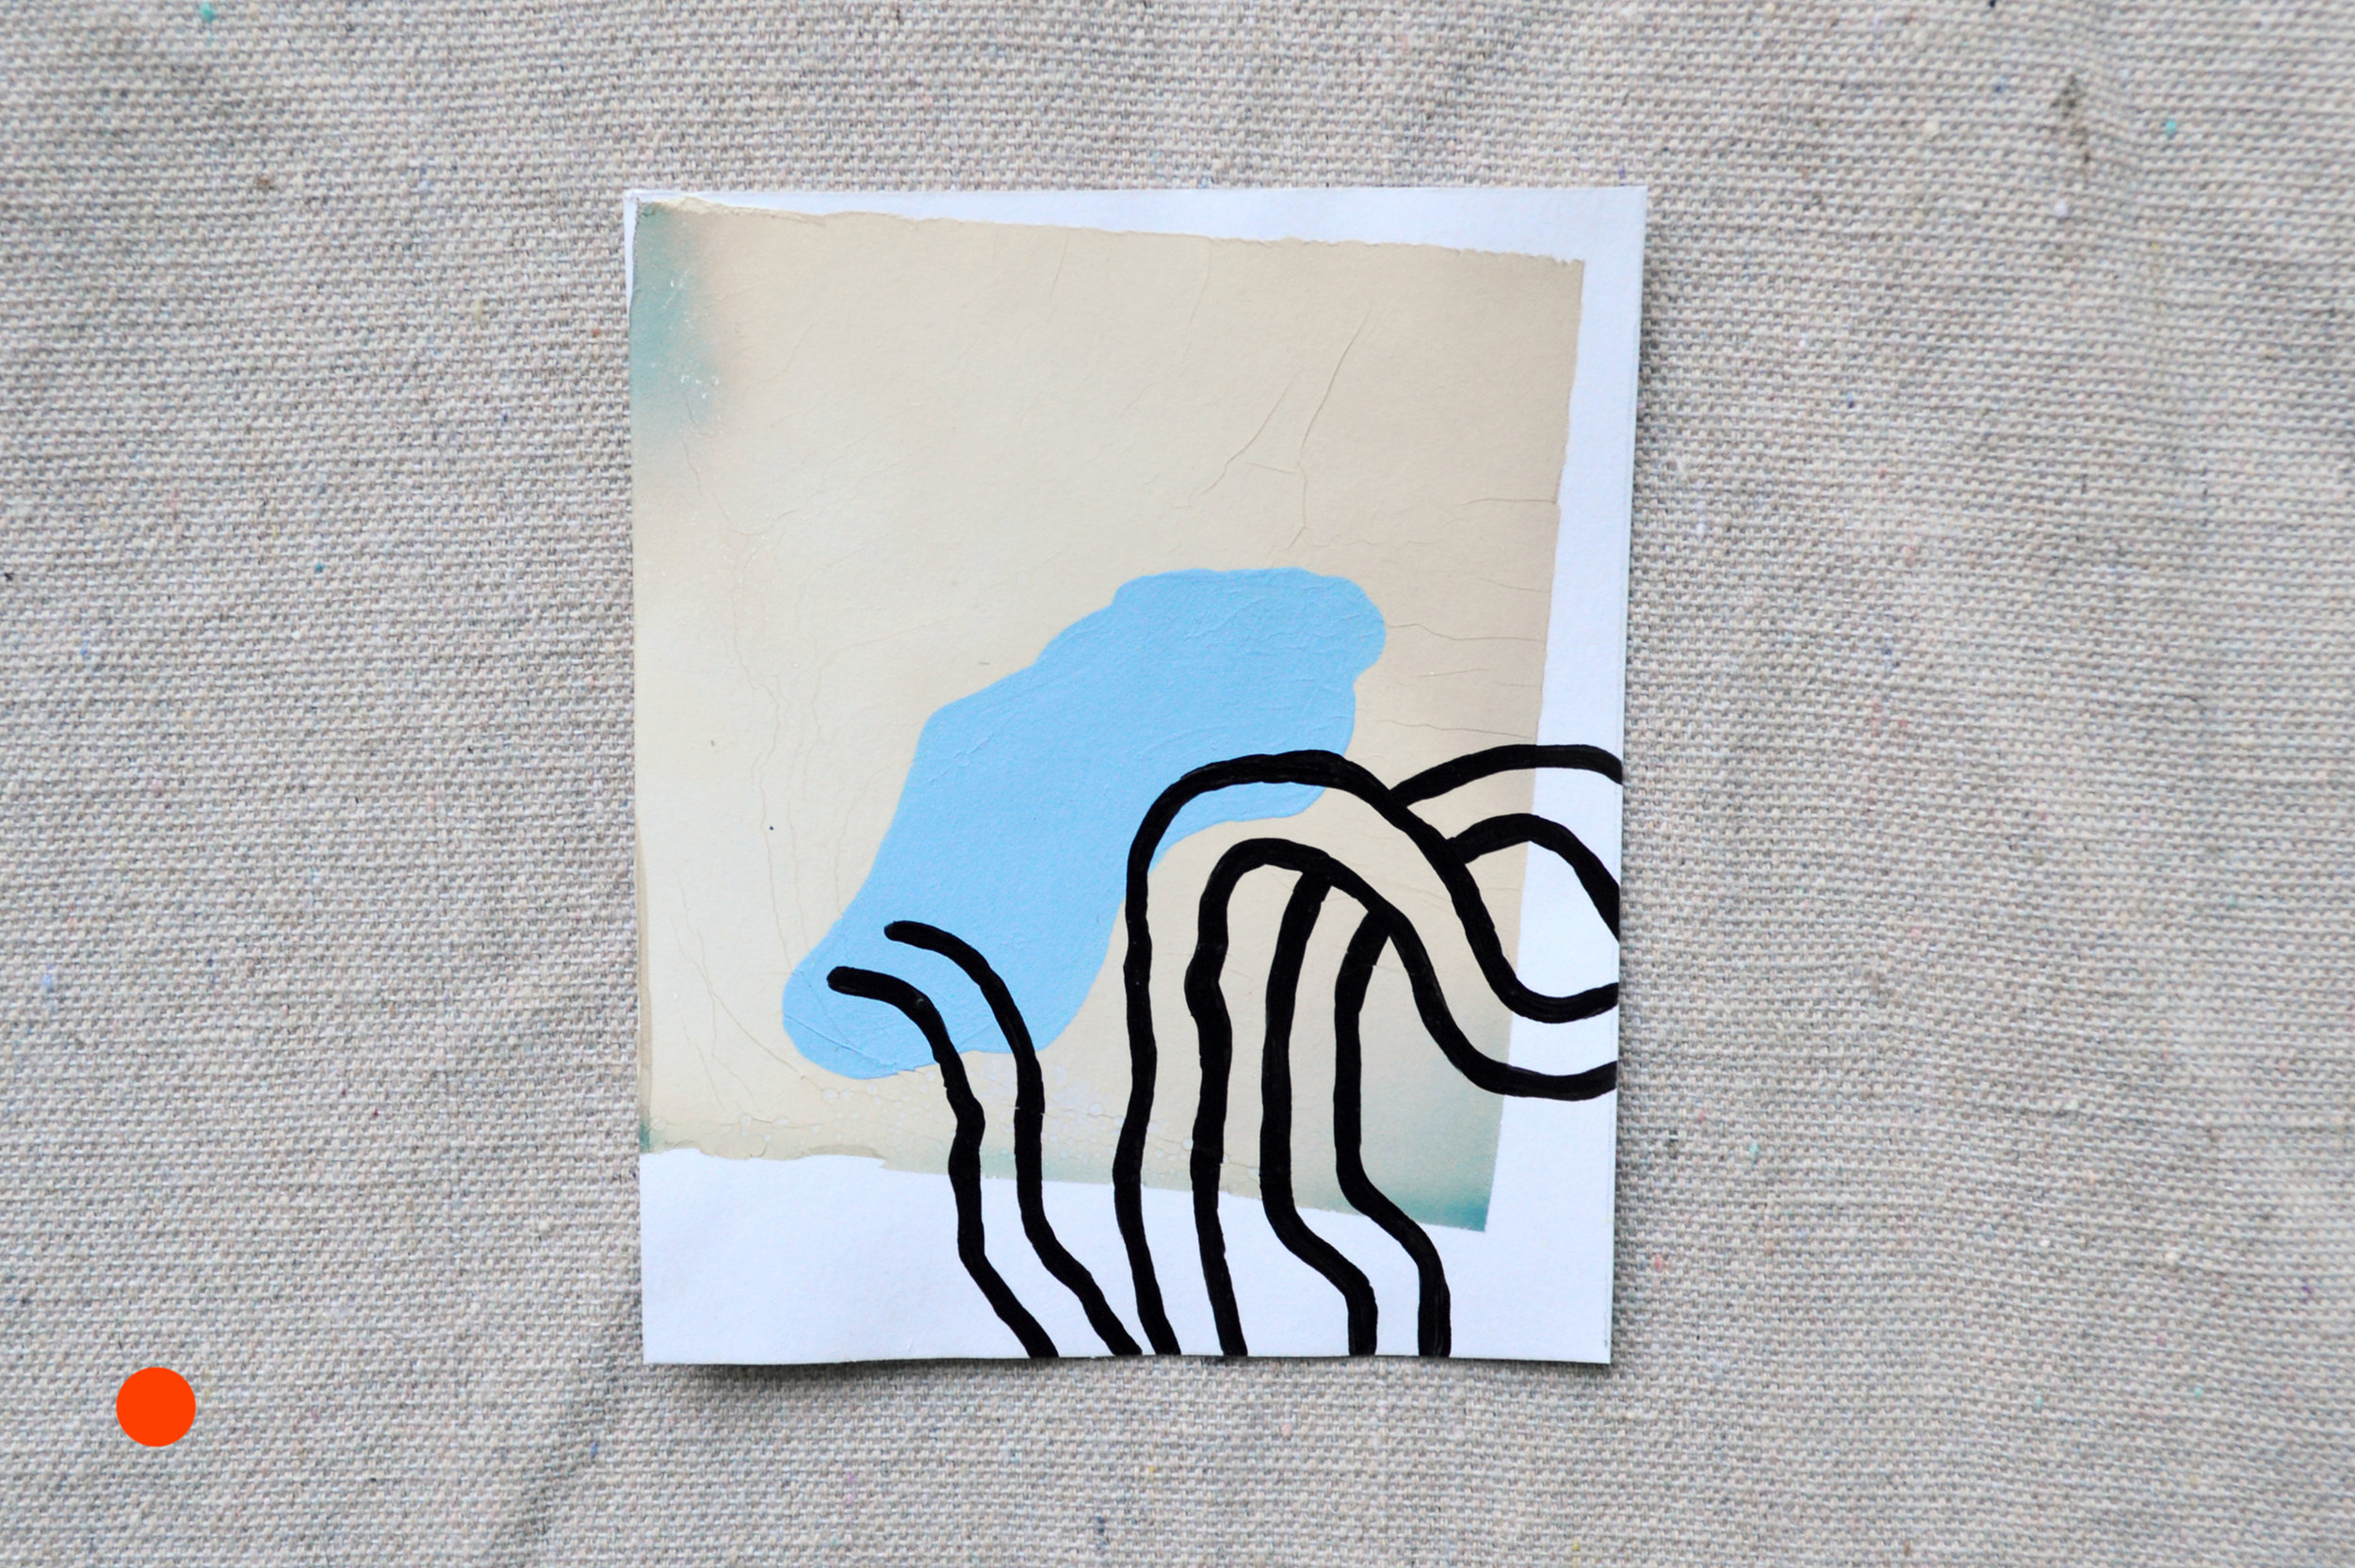 """The Aesthetics Of Being 26 And Maybe Drinking A Little Too Much (White) (SOLD)  Paint on polaroid emulsion on paper  4.5"""" x 4""""  2018"""